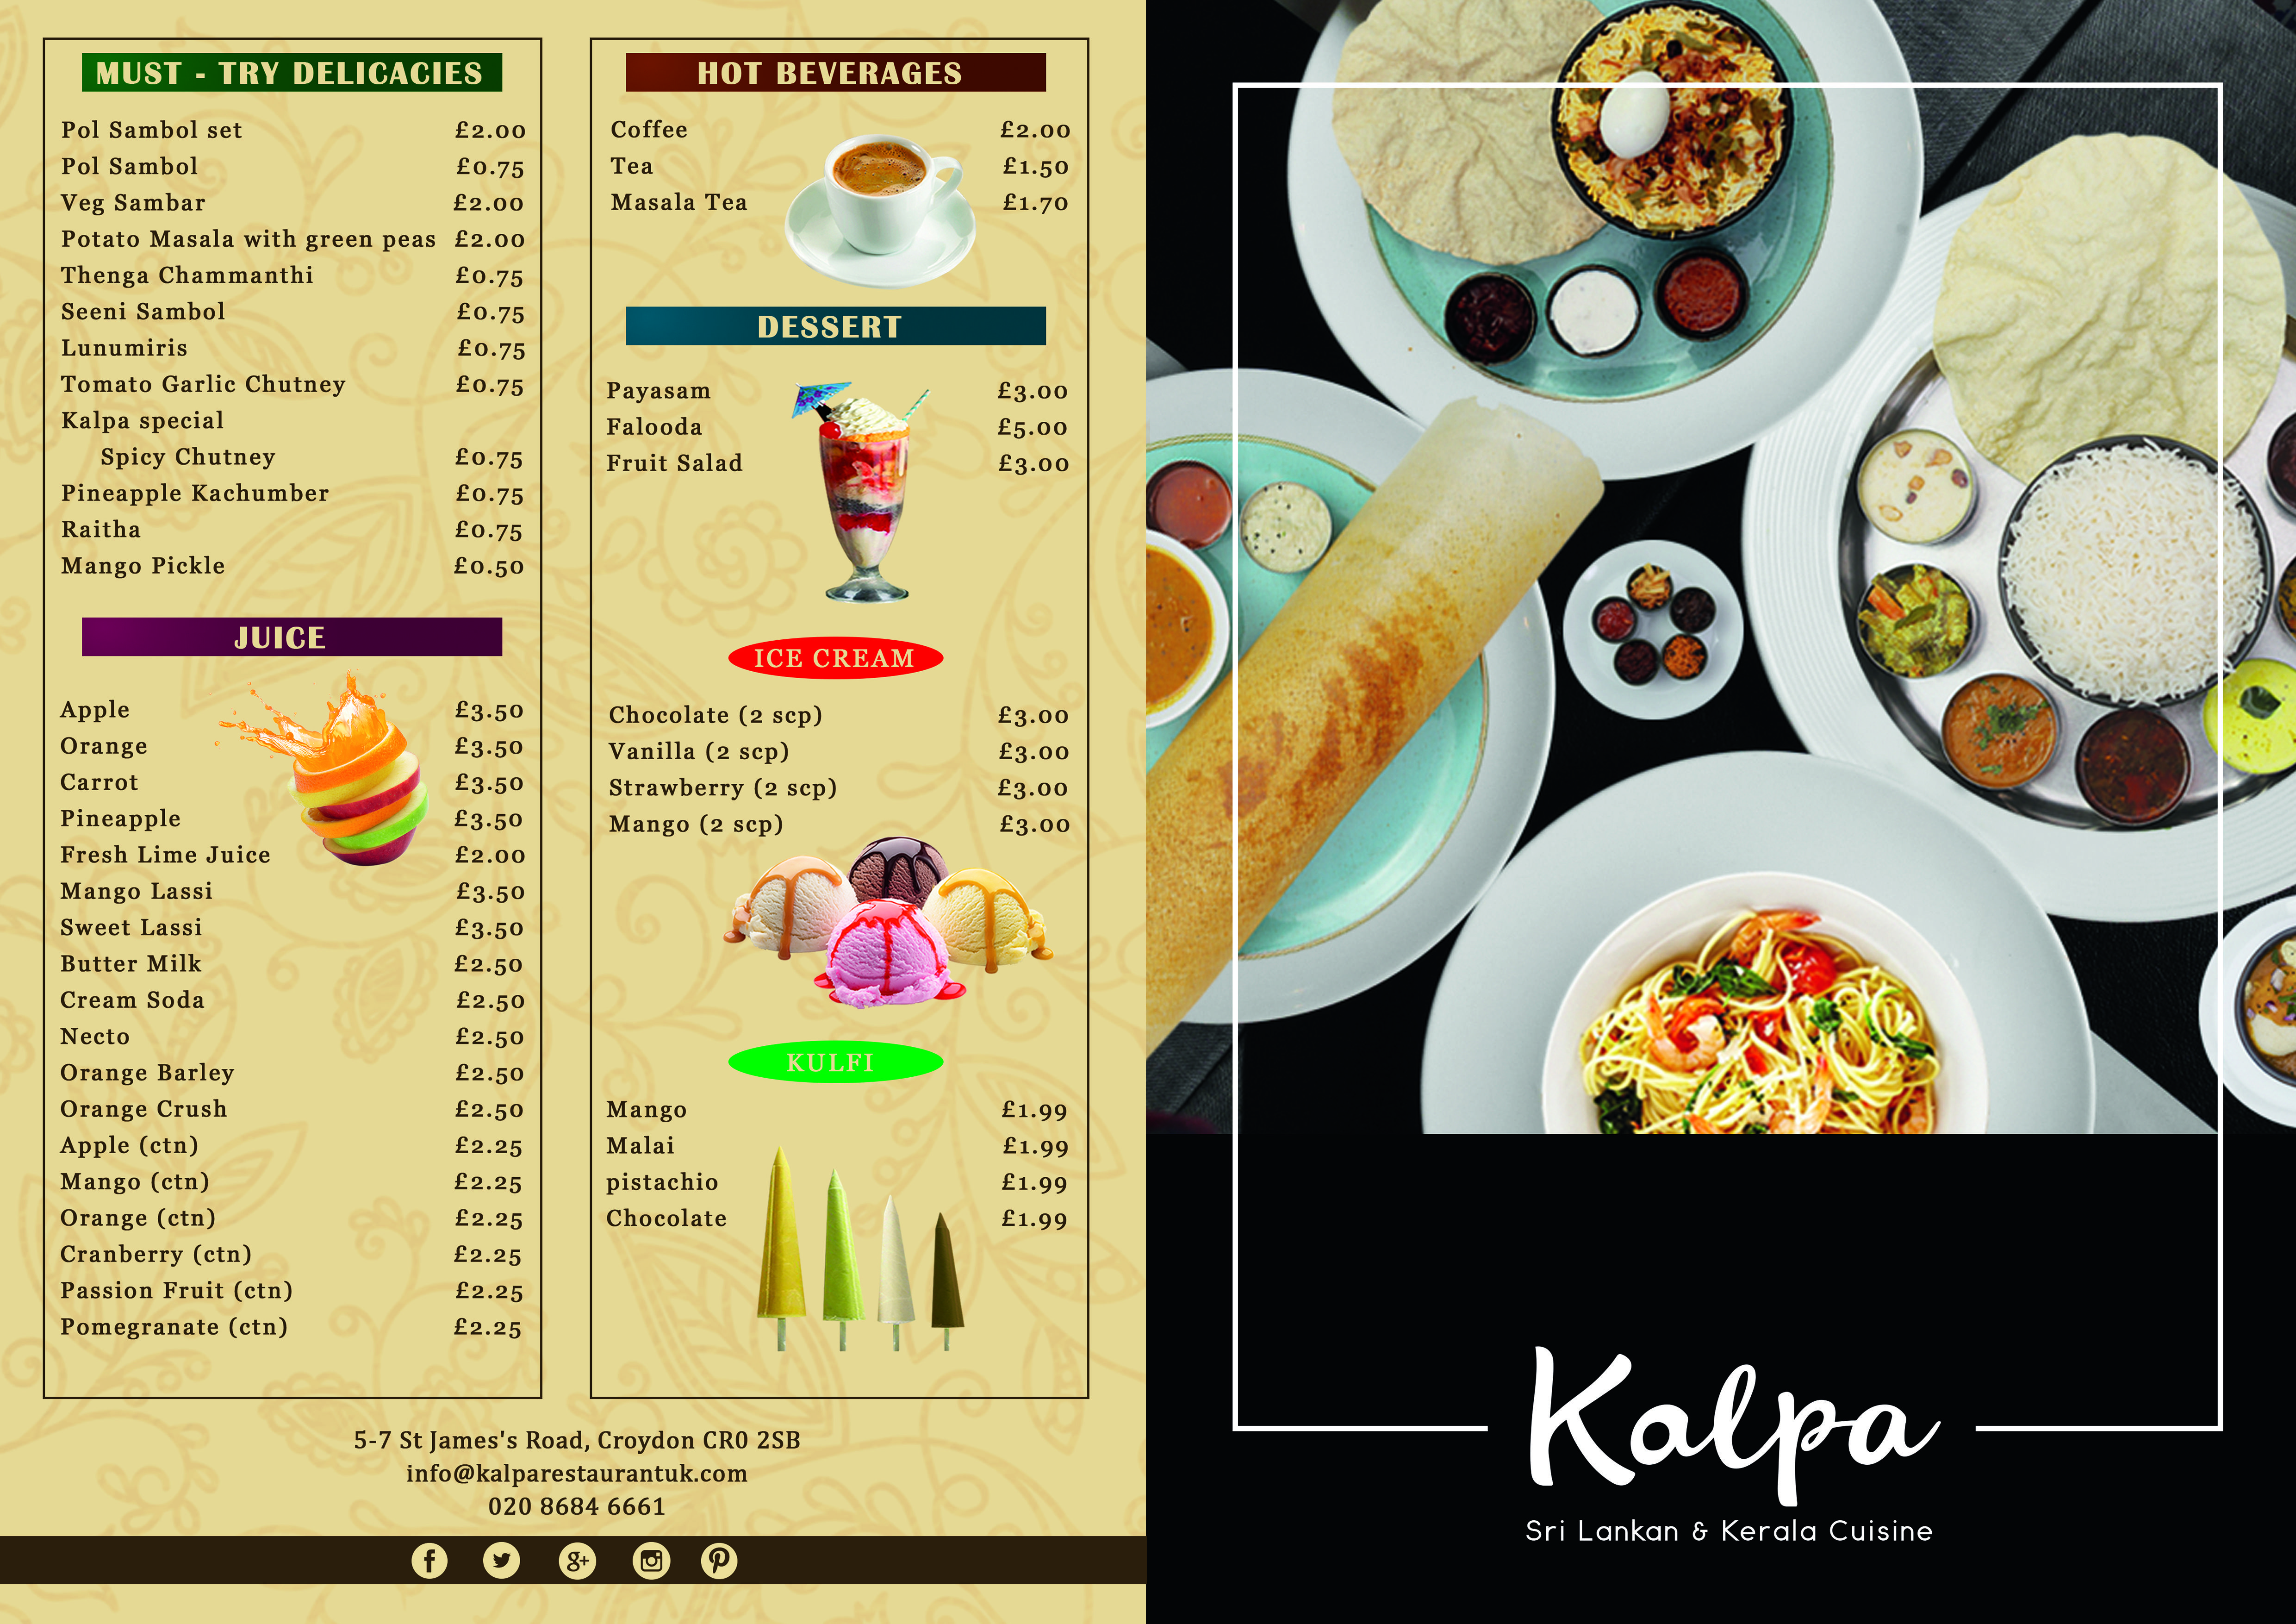 Look out our New designed menu card and Updated food